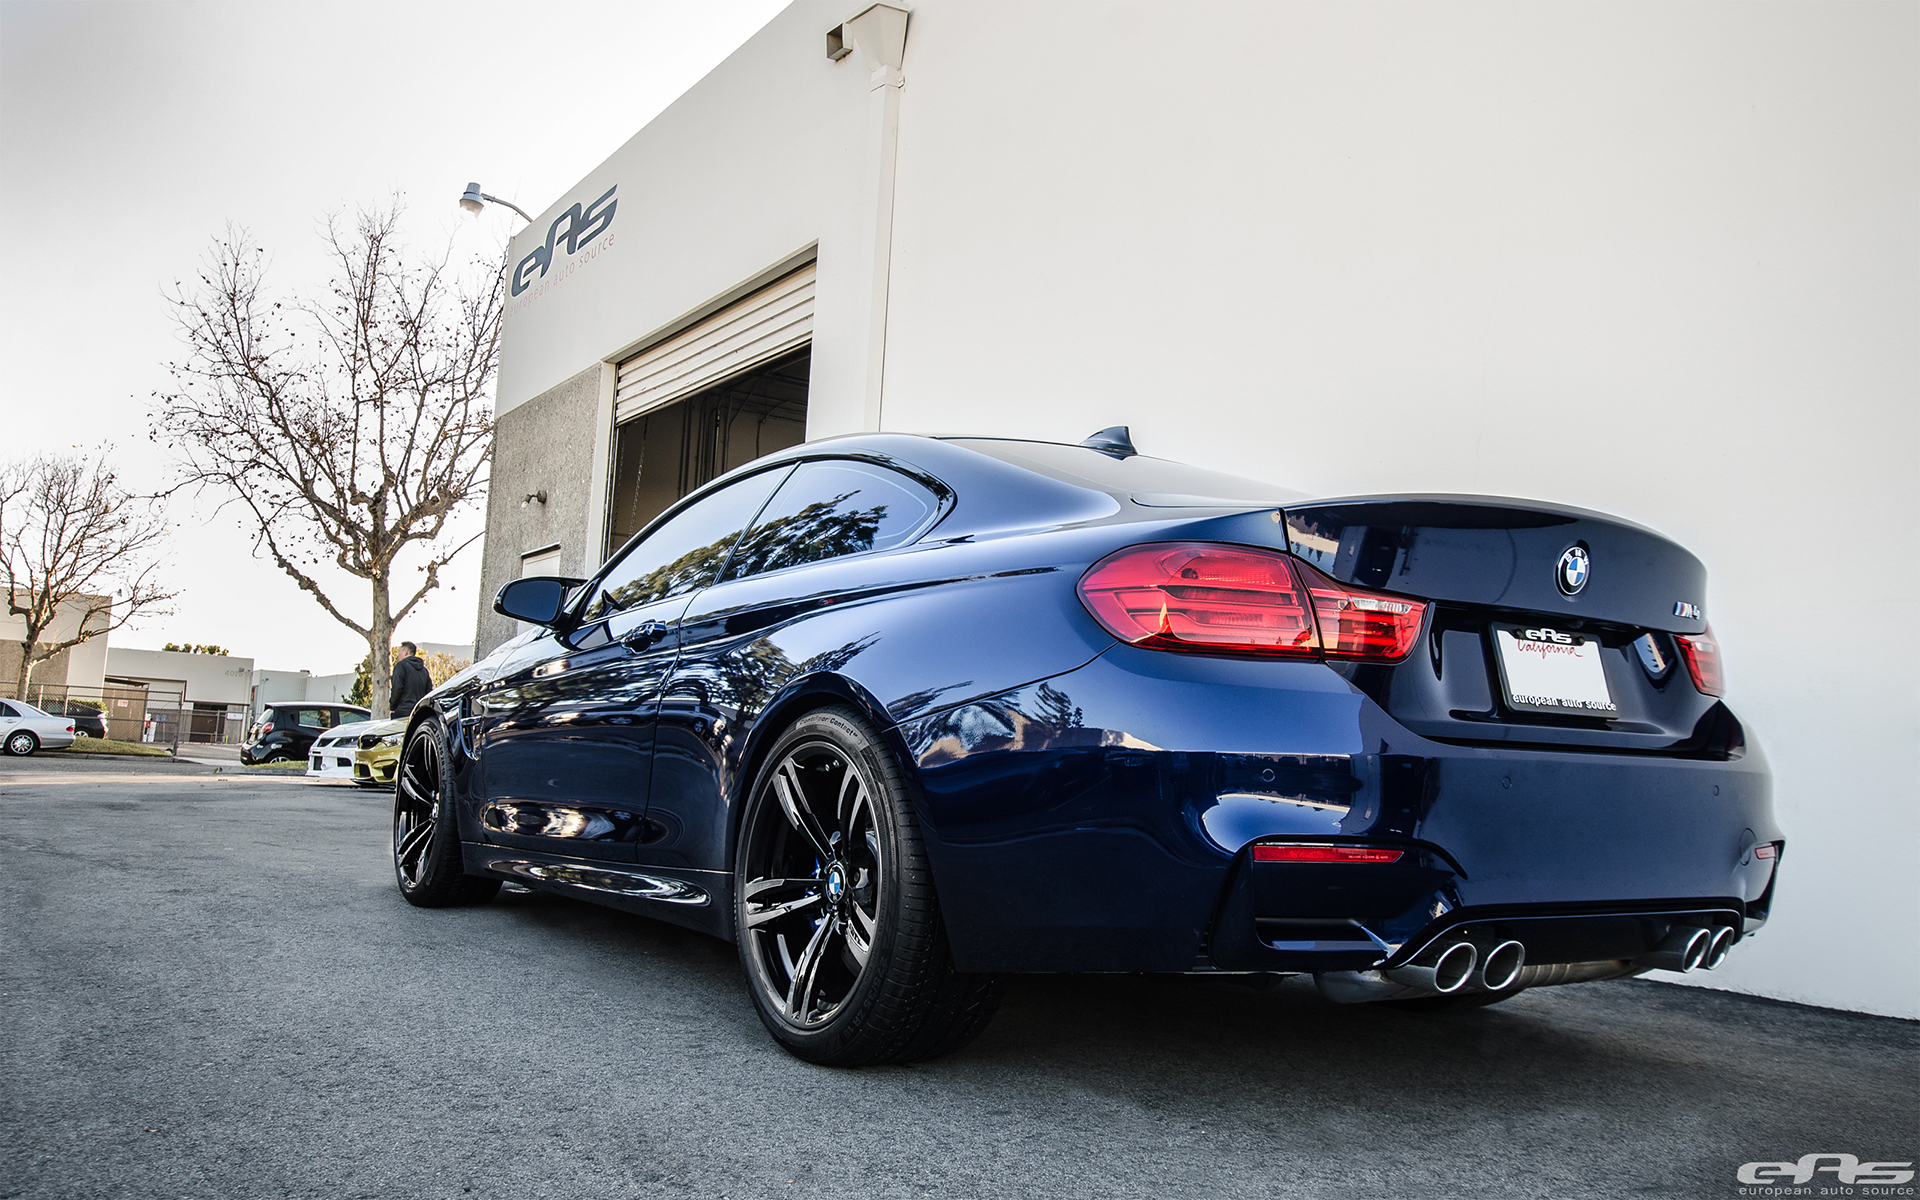 Tanzanite Blue Metallic Bmw F82 M4 Gets A Few Upgrades